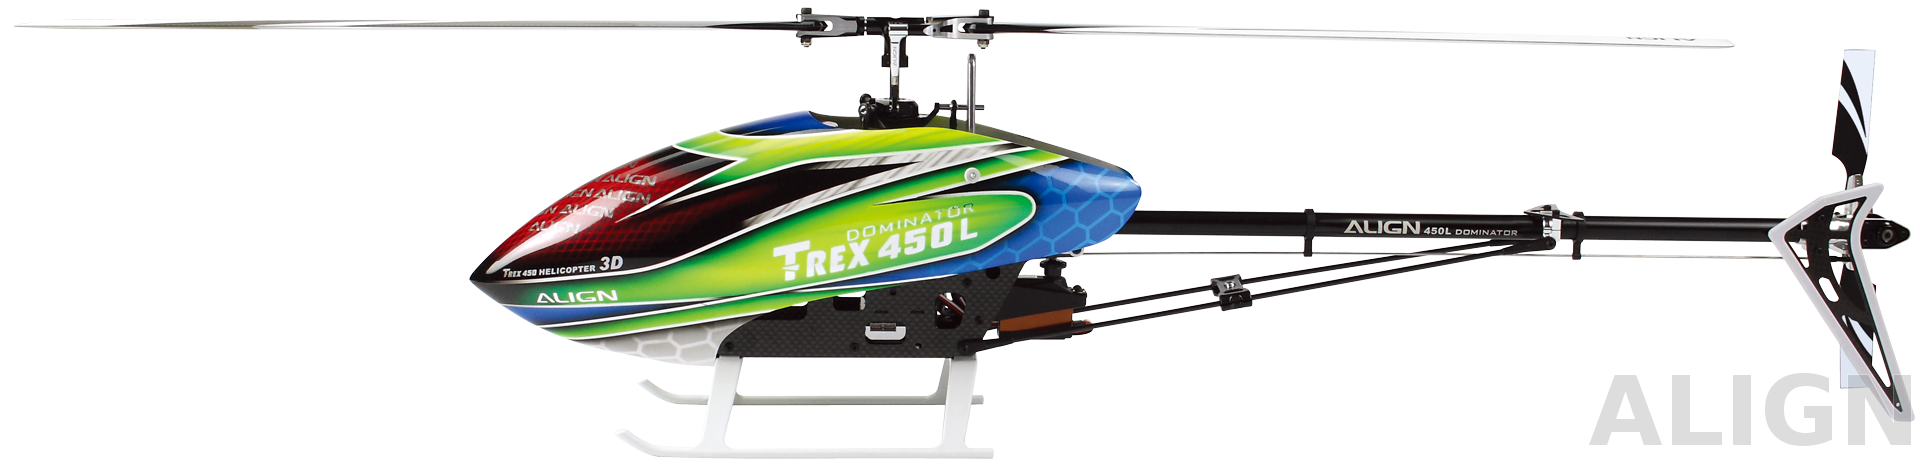 Rc Intermediate Helicopter 450 Series Taiwantrade Com